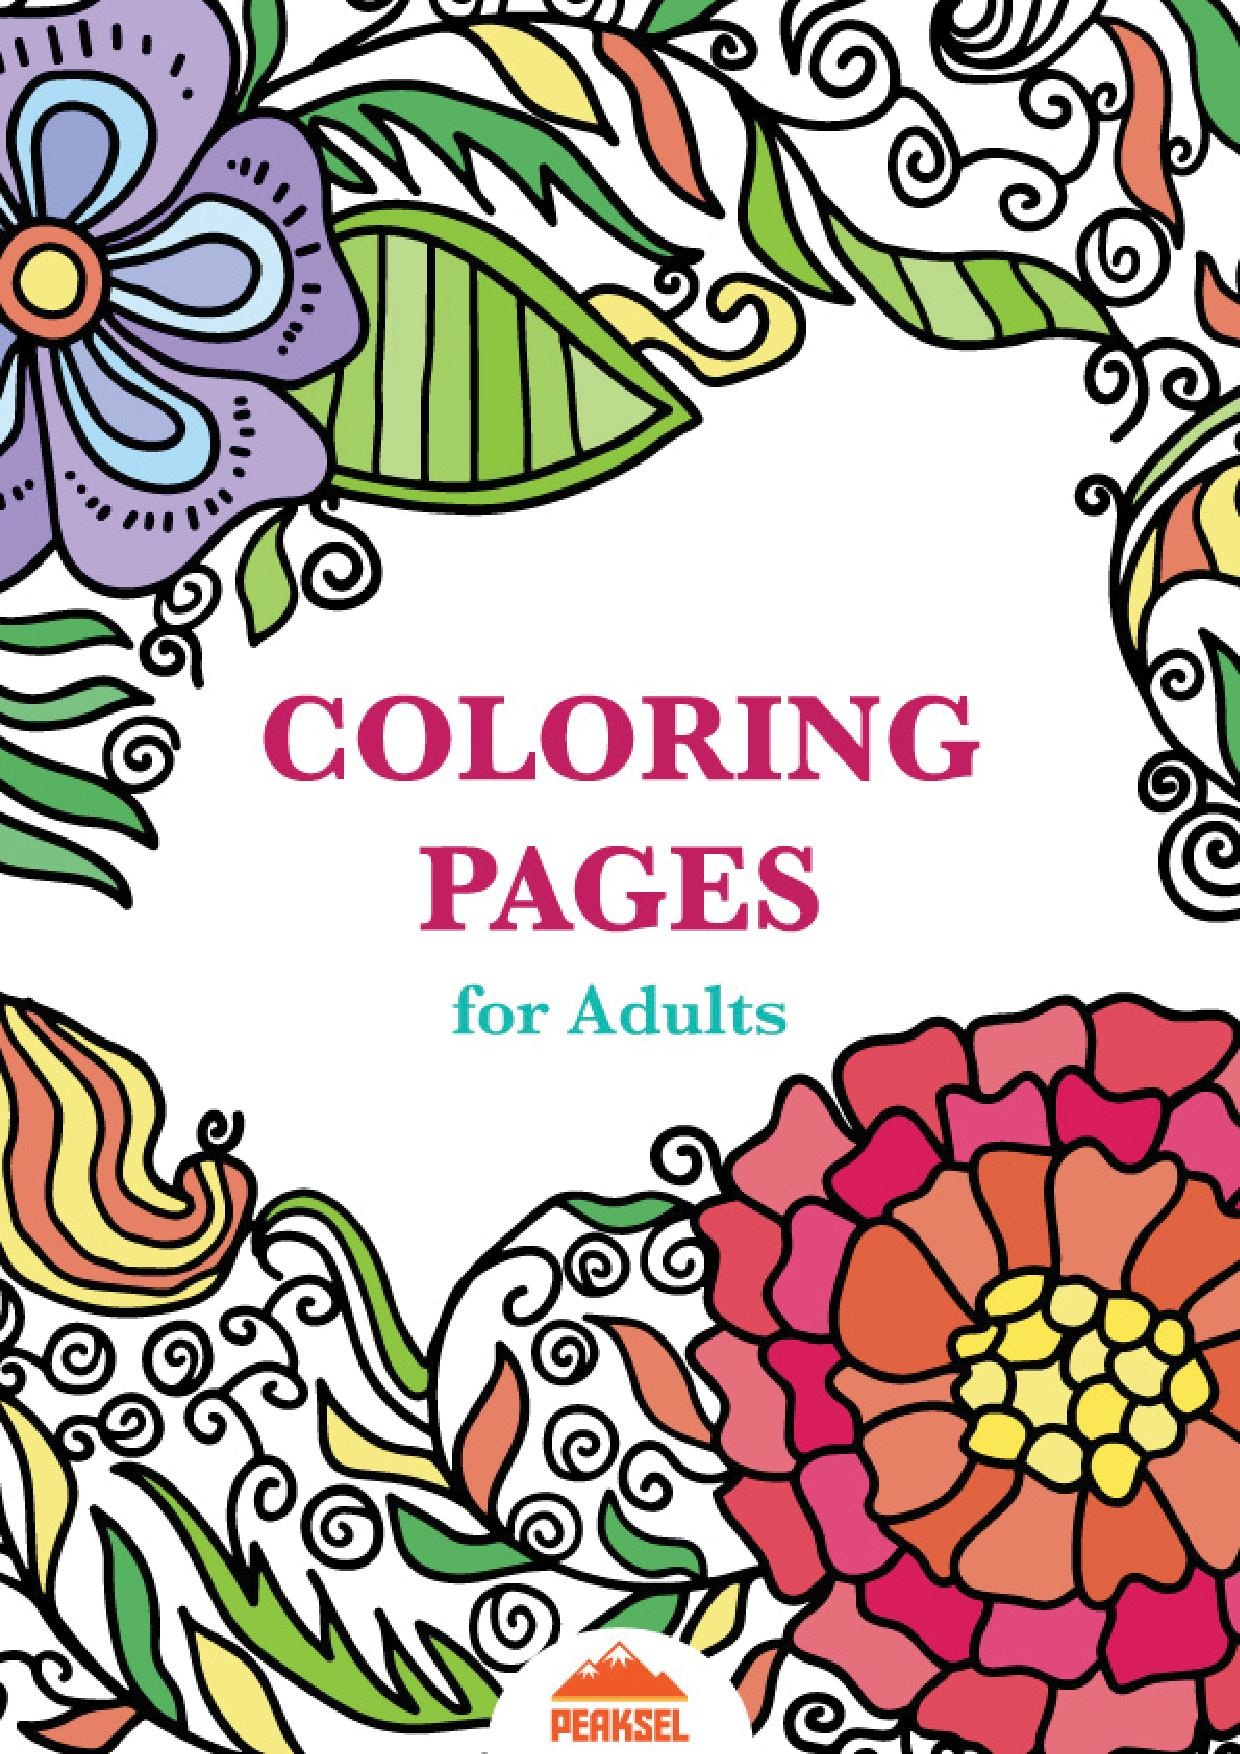 File:Printable Coloring Pages for Adults - Free Adult ...